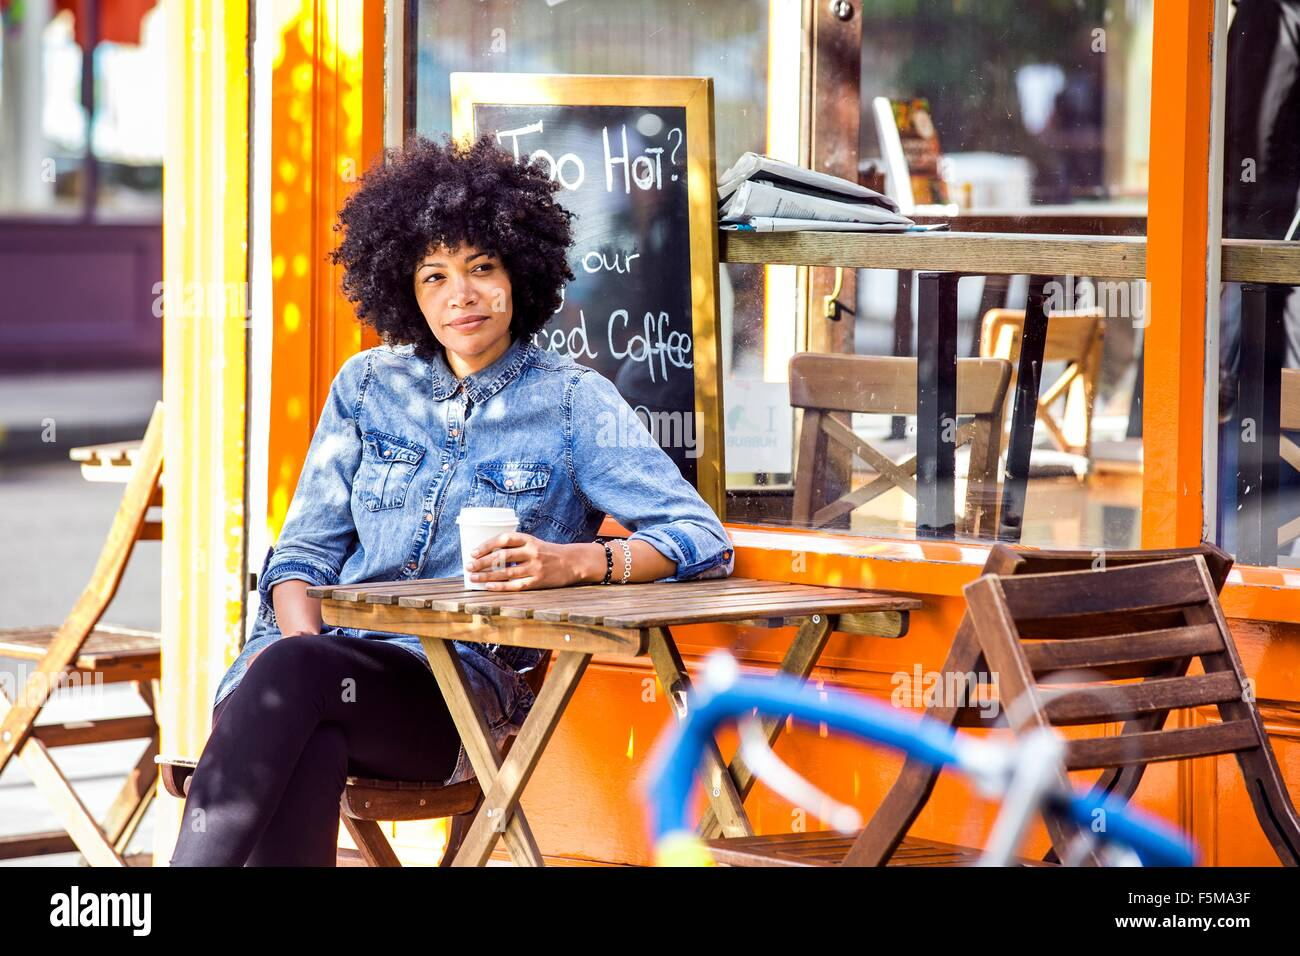 Mature woman drinking takeaway coffee and sidewalk cafe - Stock Image